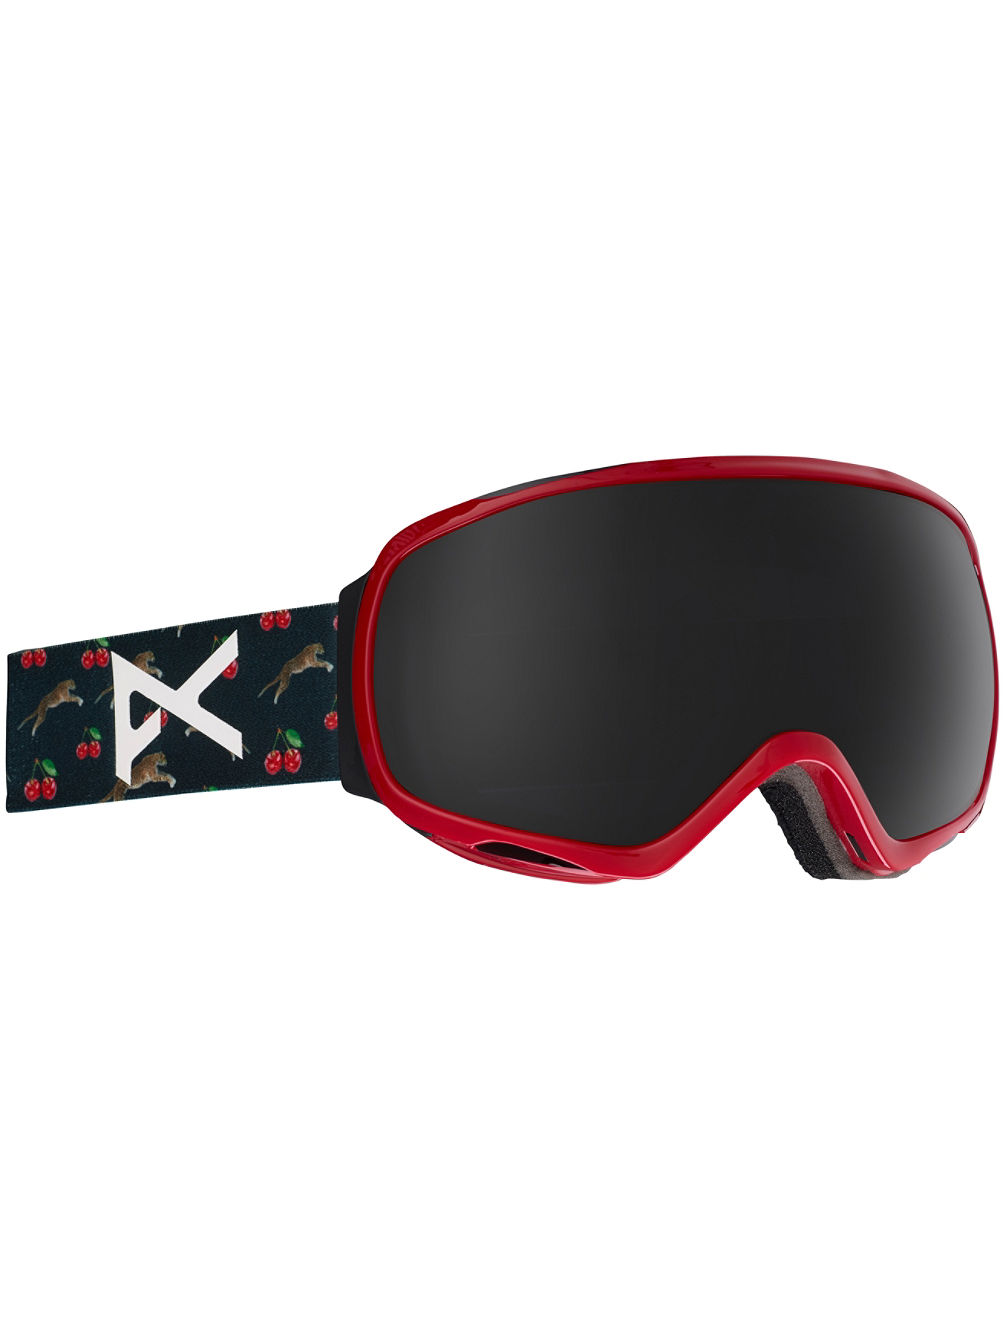 Tempest Black Cherries Goggle